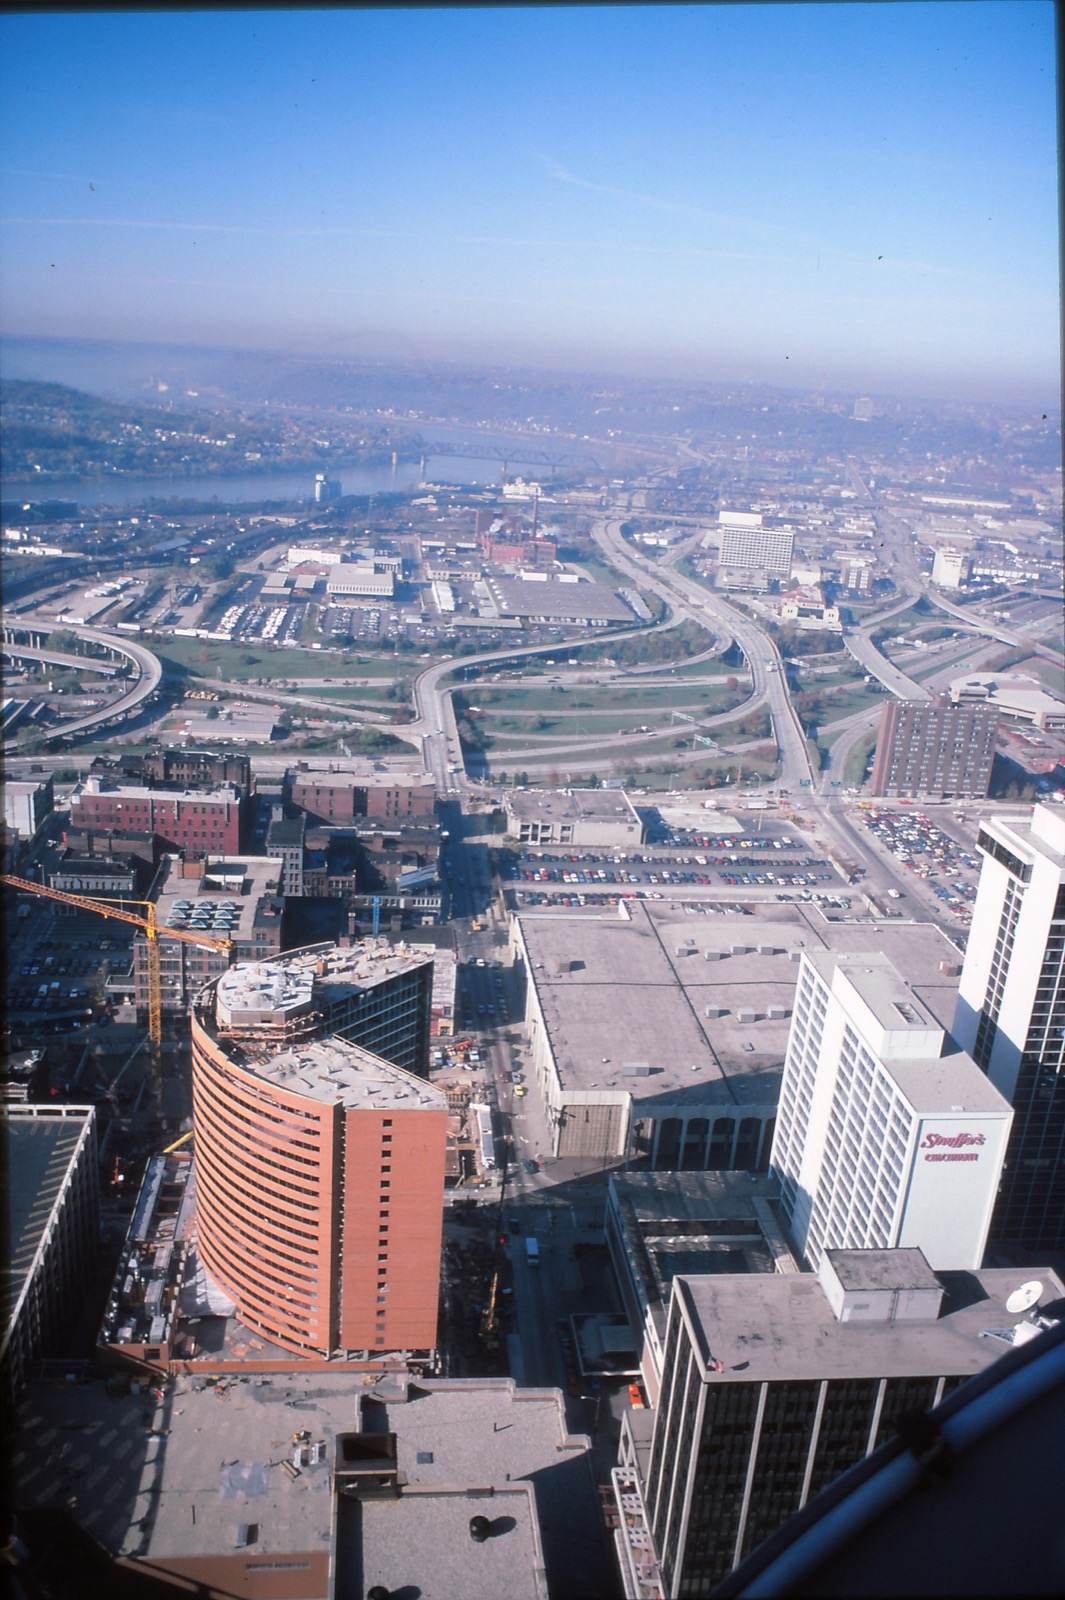 "Whether it's the bellbottoms, the retro cityscapes, or the graininess from a 35mm film camera, these photos of Cincinnati from the 1980s (courtesy of Flickr user ""mplstodd"") are about as romantic as it gets. For those who were alive during that decade, they offer a prime avenue for reminiscing. For those who weren't, they're an uncanny escape into a Queen City from a different age. / Image courtesy of Flickr user mplstodd // Published: 3.12.18"